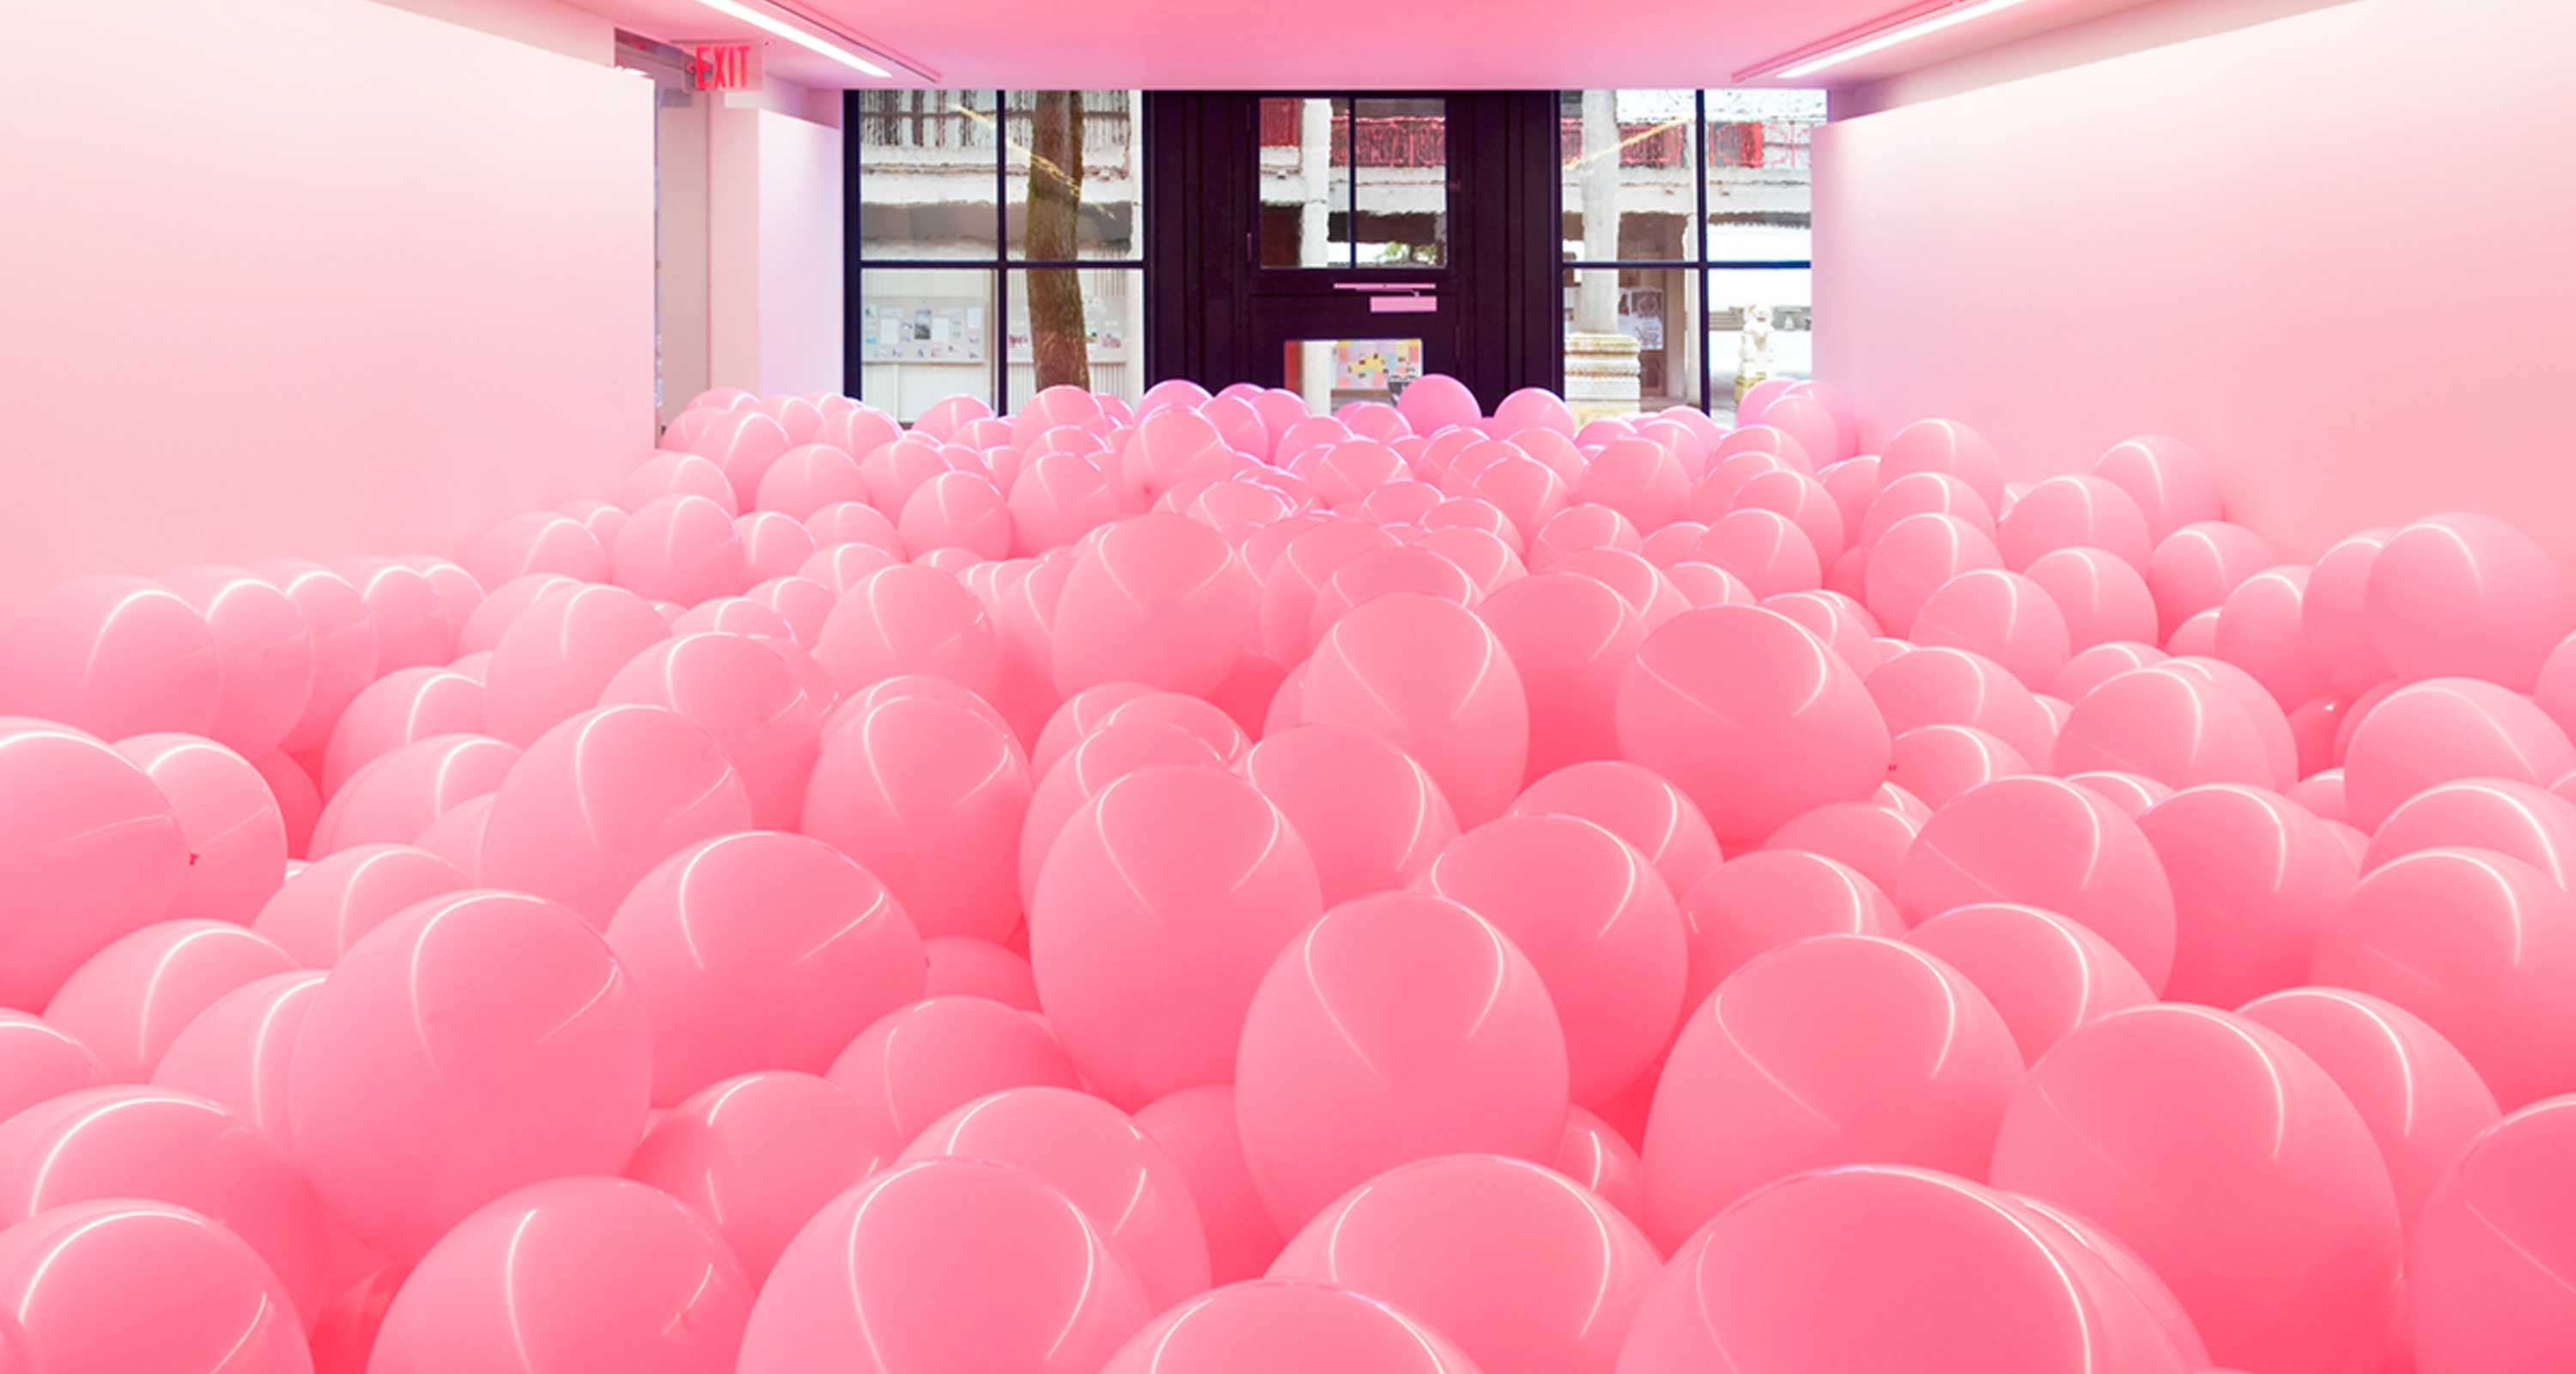 Image of Martin Creed, Work No. 329, 2004, balloons. On loan from the Rennie Collection at Wing Sang, Vancouver. Photo by SITE Photography. © Martin Creed